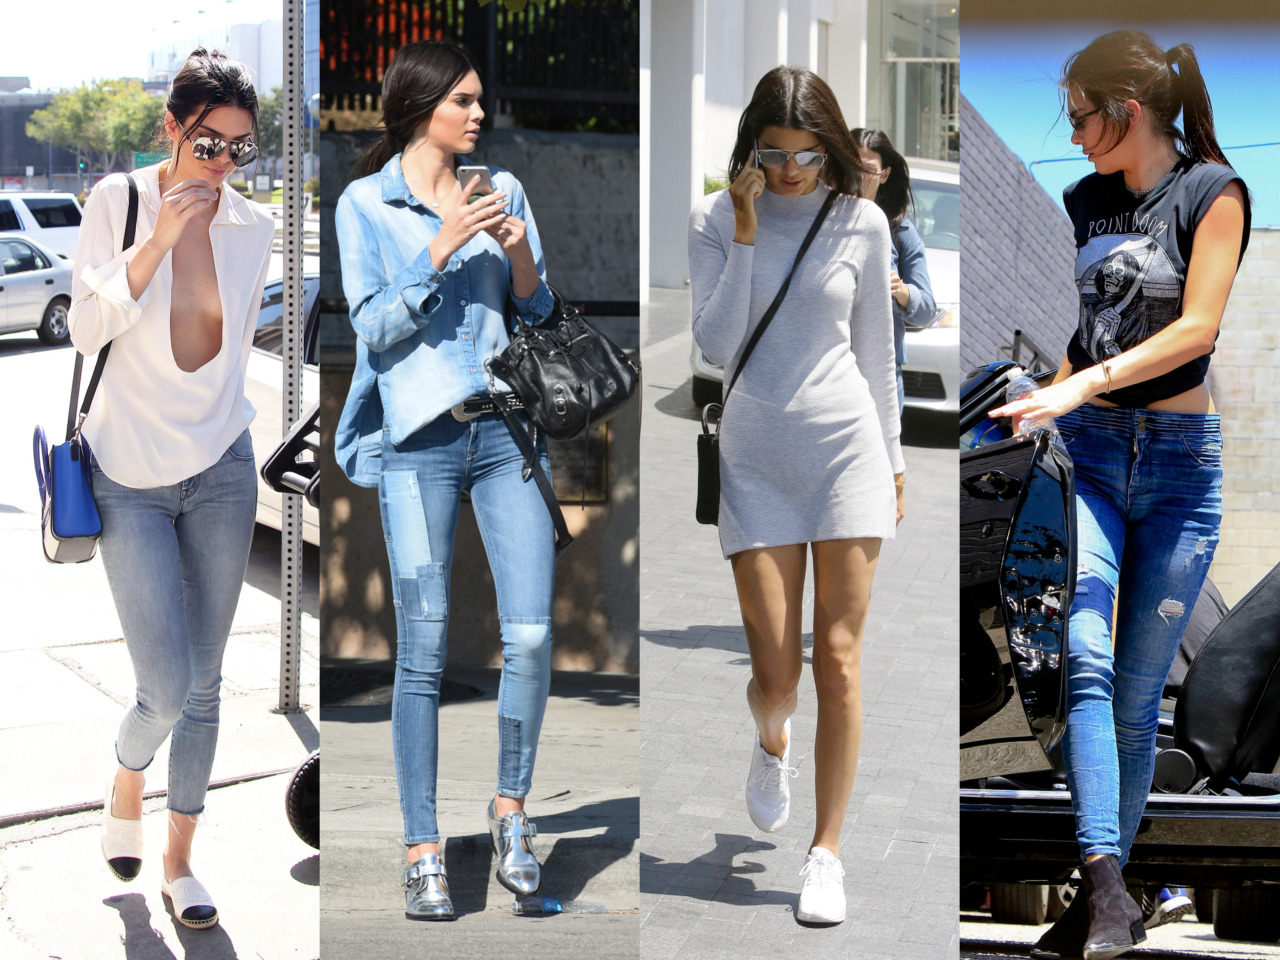 Kendall Jenner/კენდალ ჯენერი - Page 11 38314fa547025762a8a7c39698781cfe